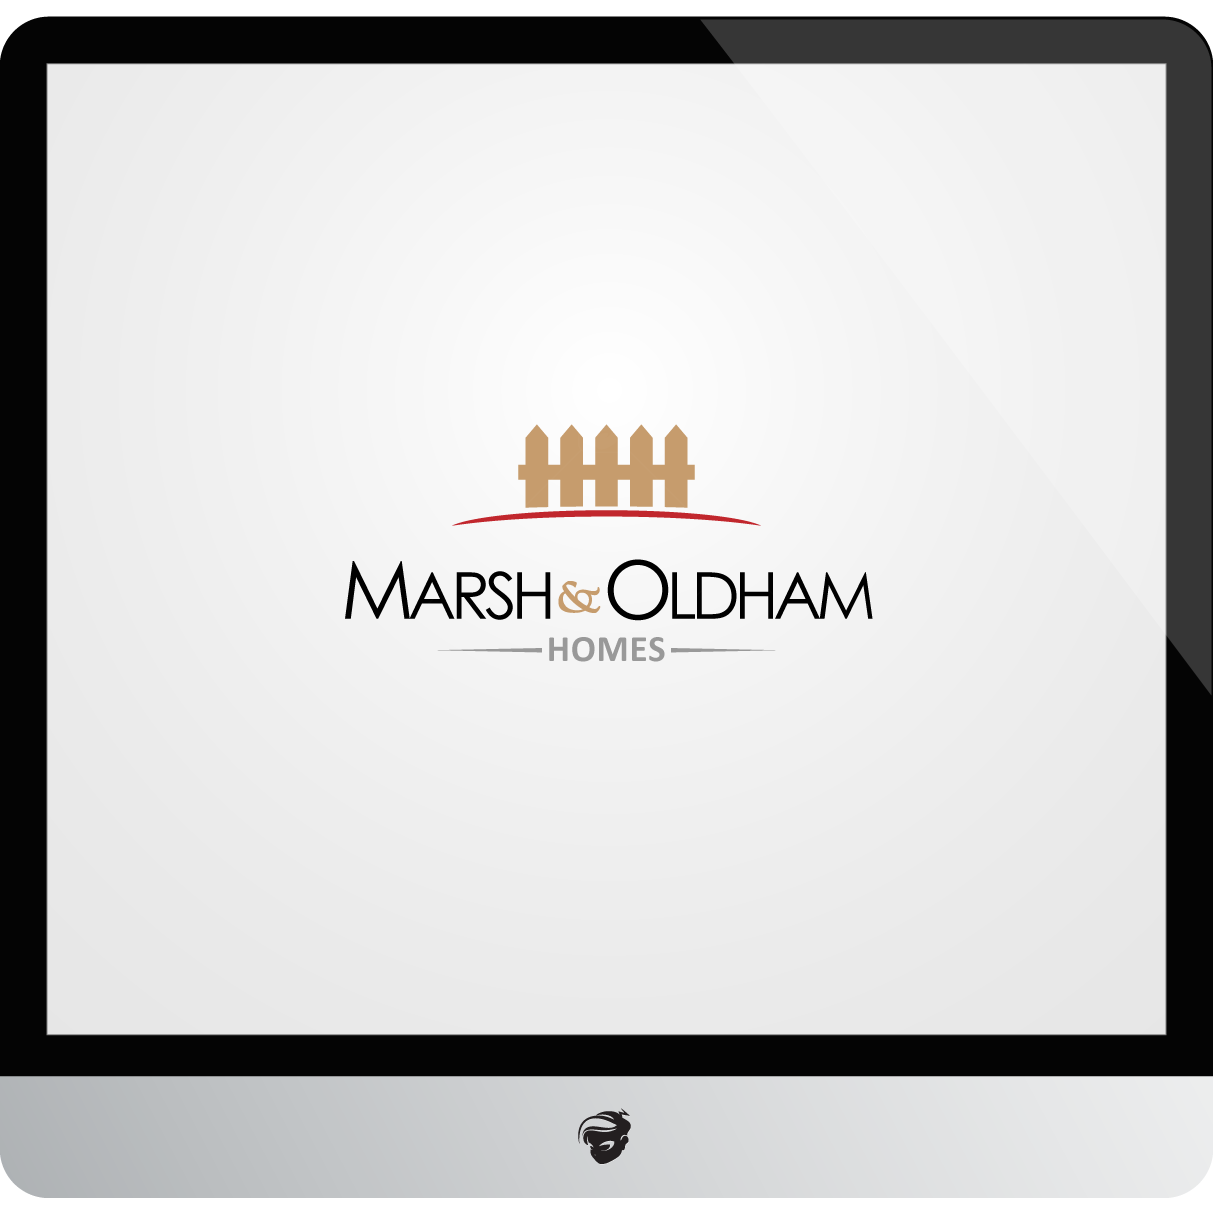 Logo Design by zesthar - Entry No. 110 in the Logo Design Contest Artistic Logo Design for Marsh & Oldham Homes.